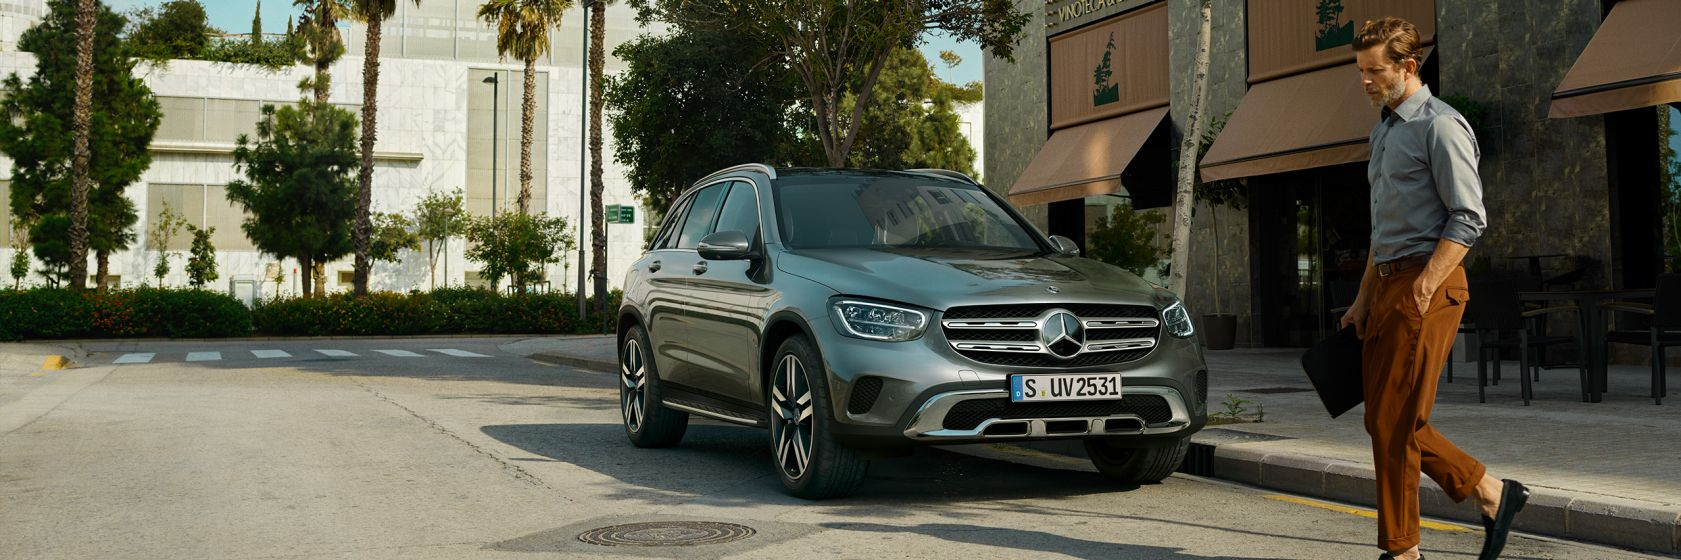 Цена Mercedes-Benz GLC 2020